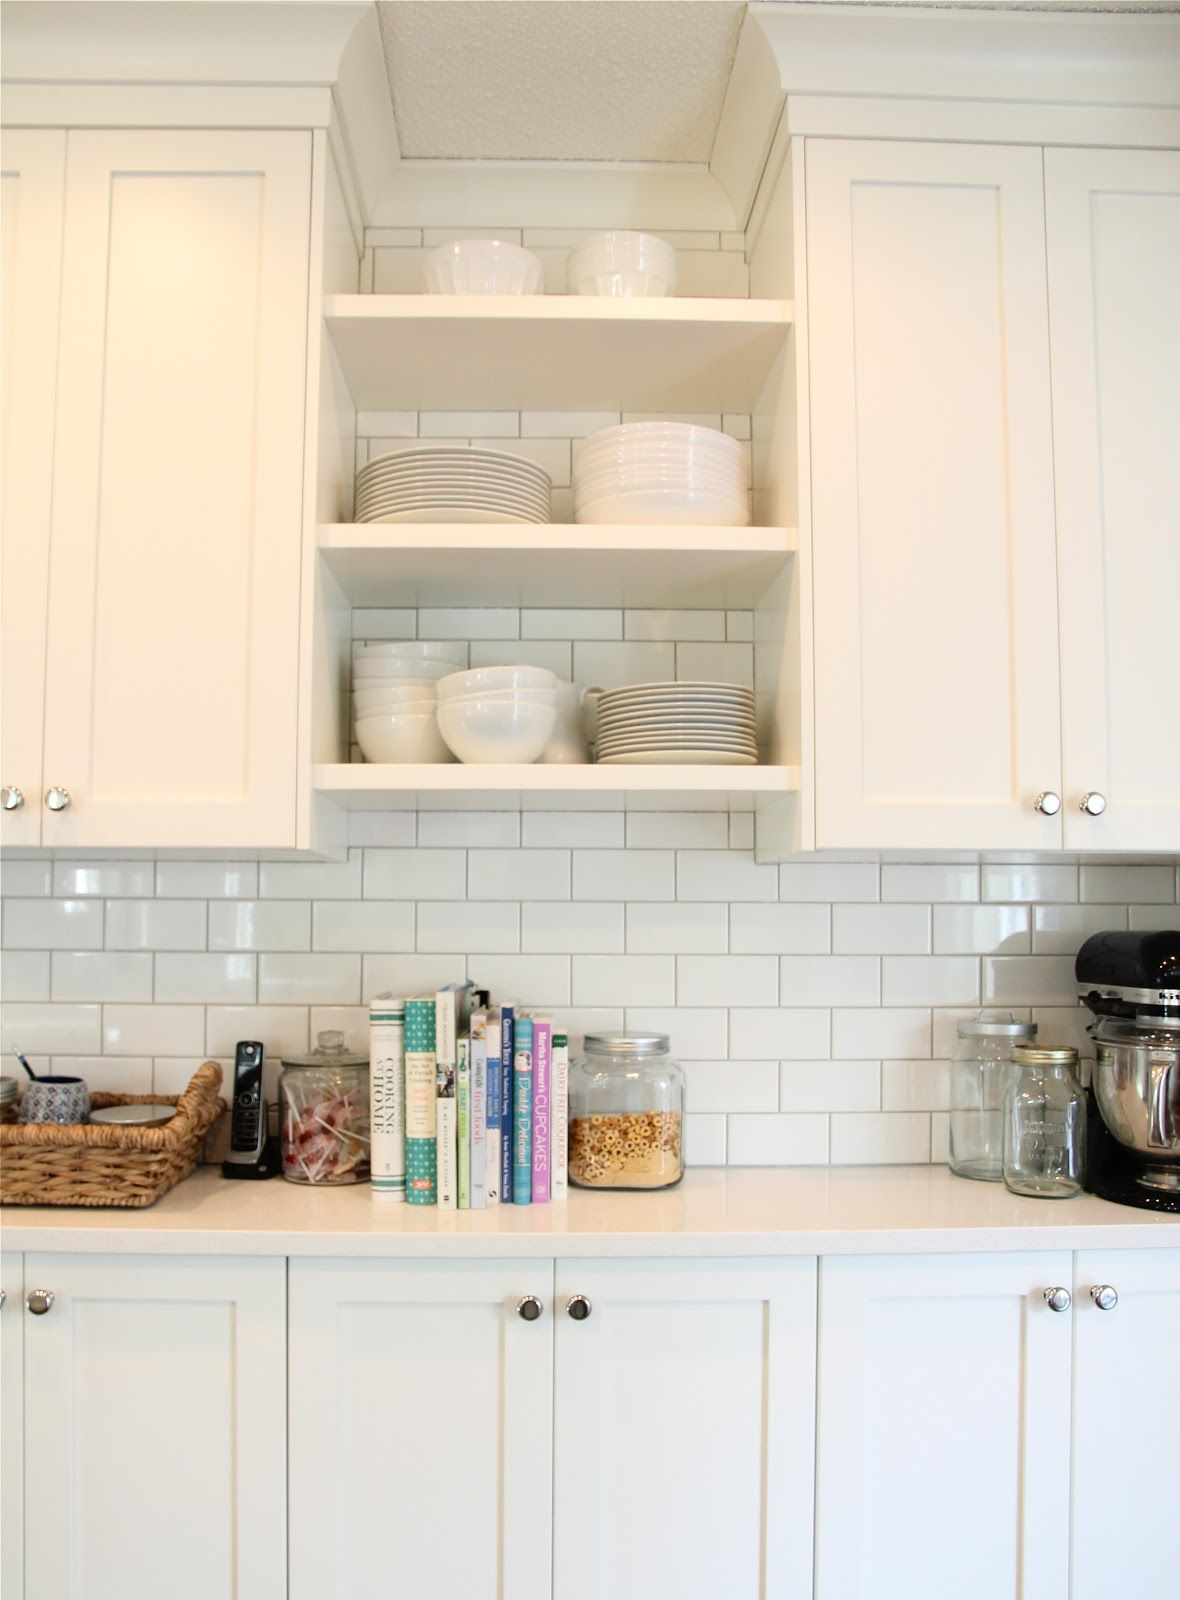 Oxford Kitchen Cabinets Home Depot Cloud White Cabinets Light Gray Grout White Subway Tiles